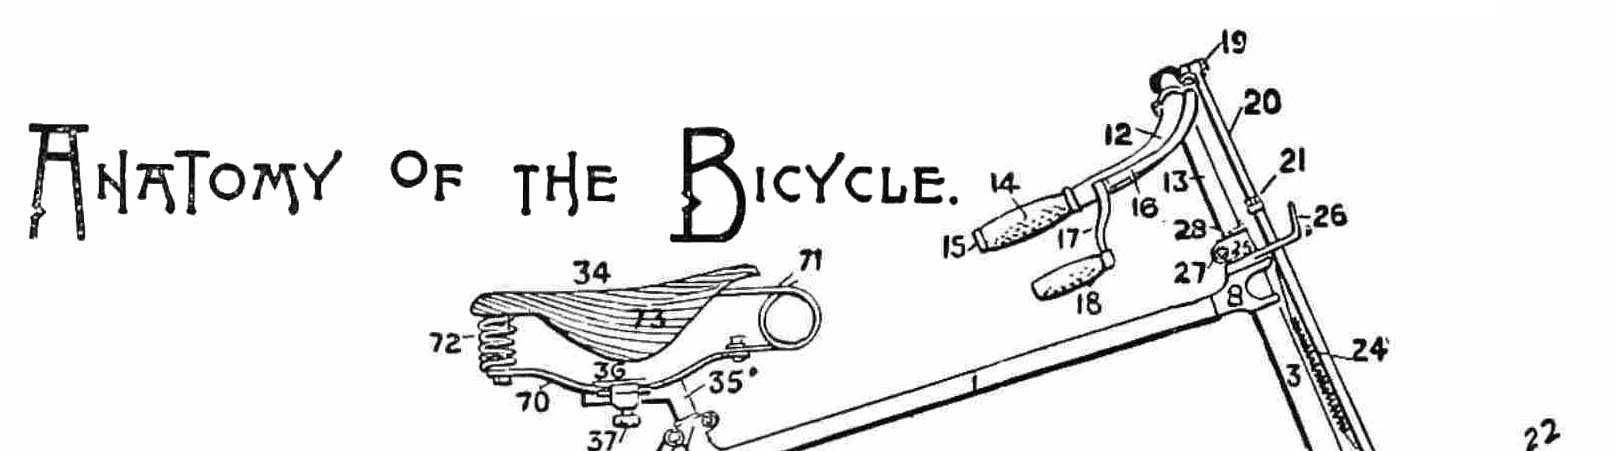 anatomy of a bicycle blow up